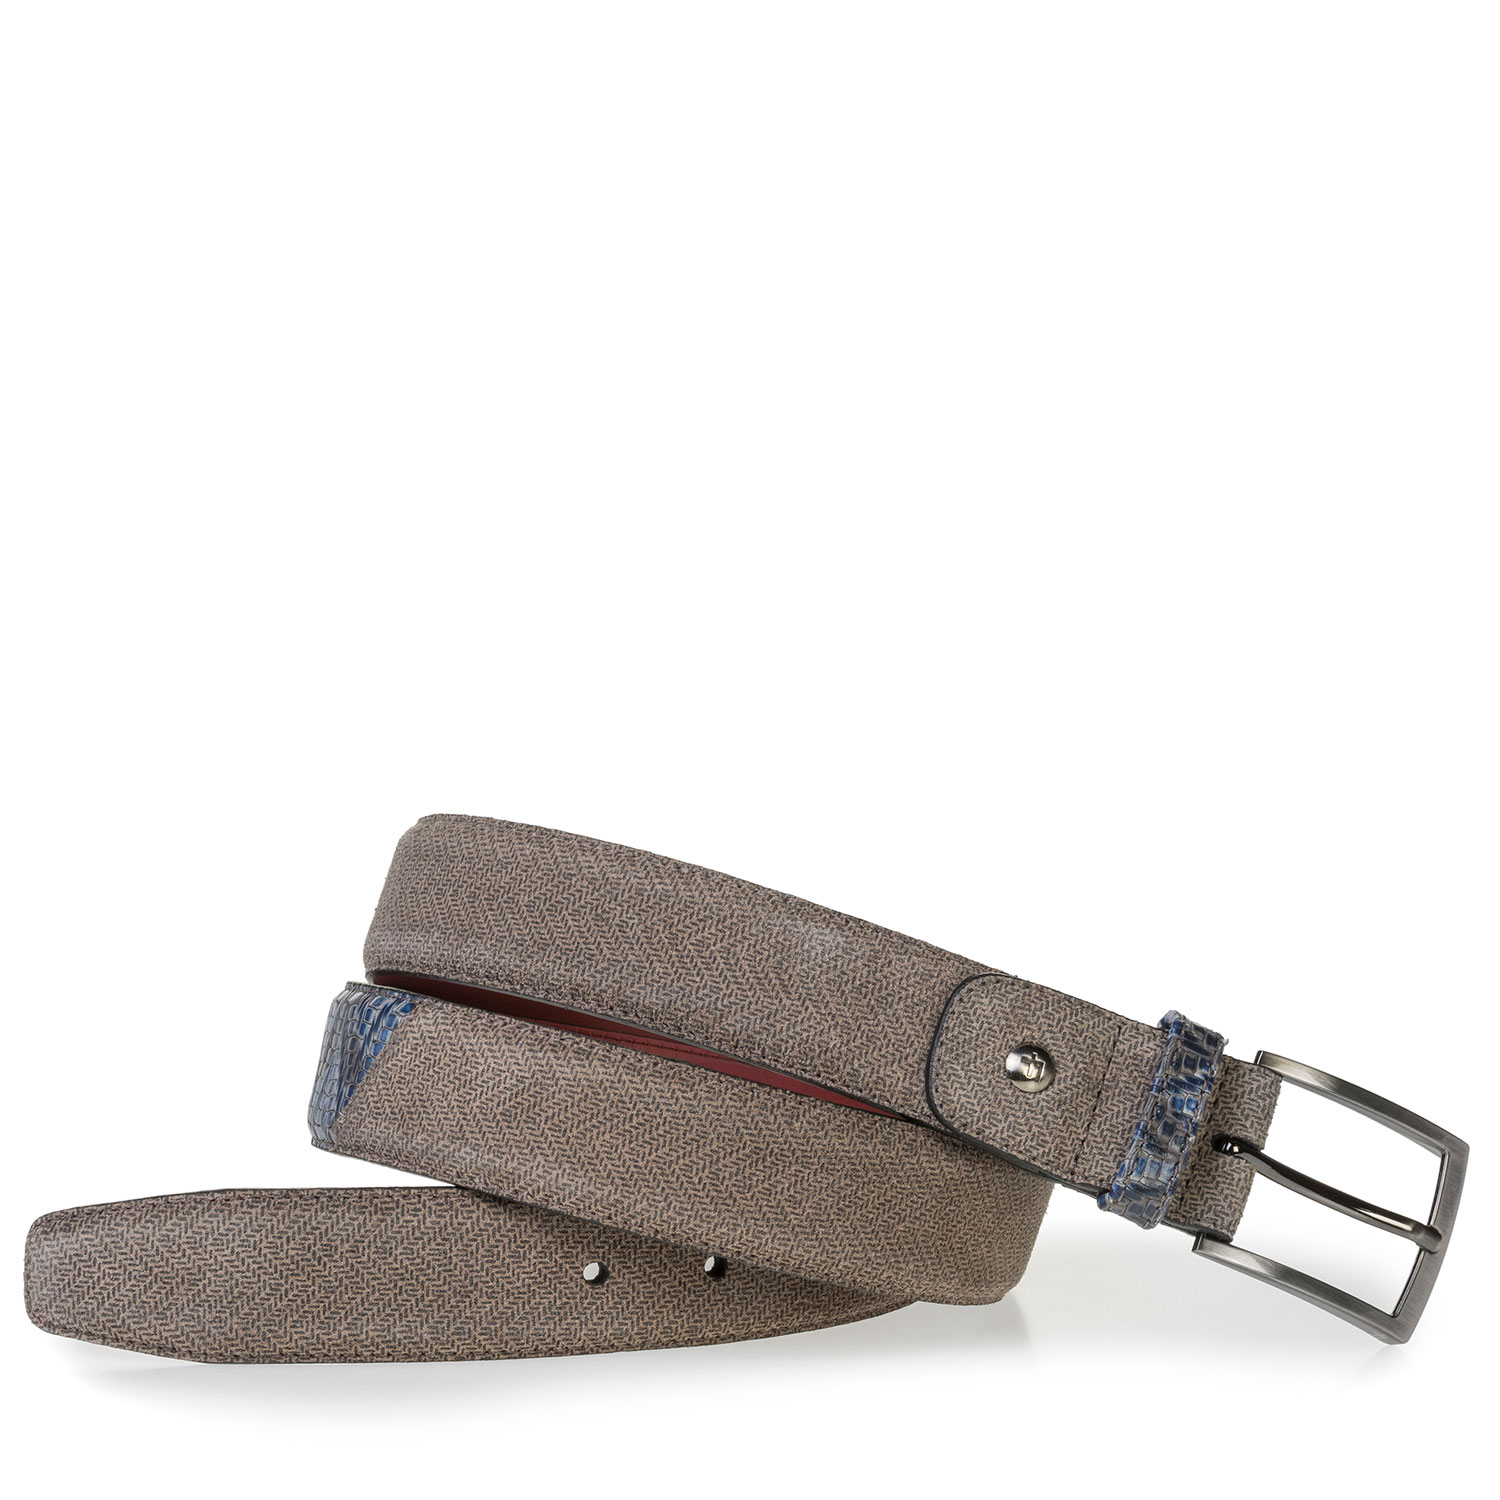 75188/56 - Beige suede leather belt with print